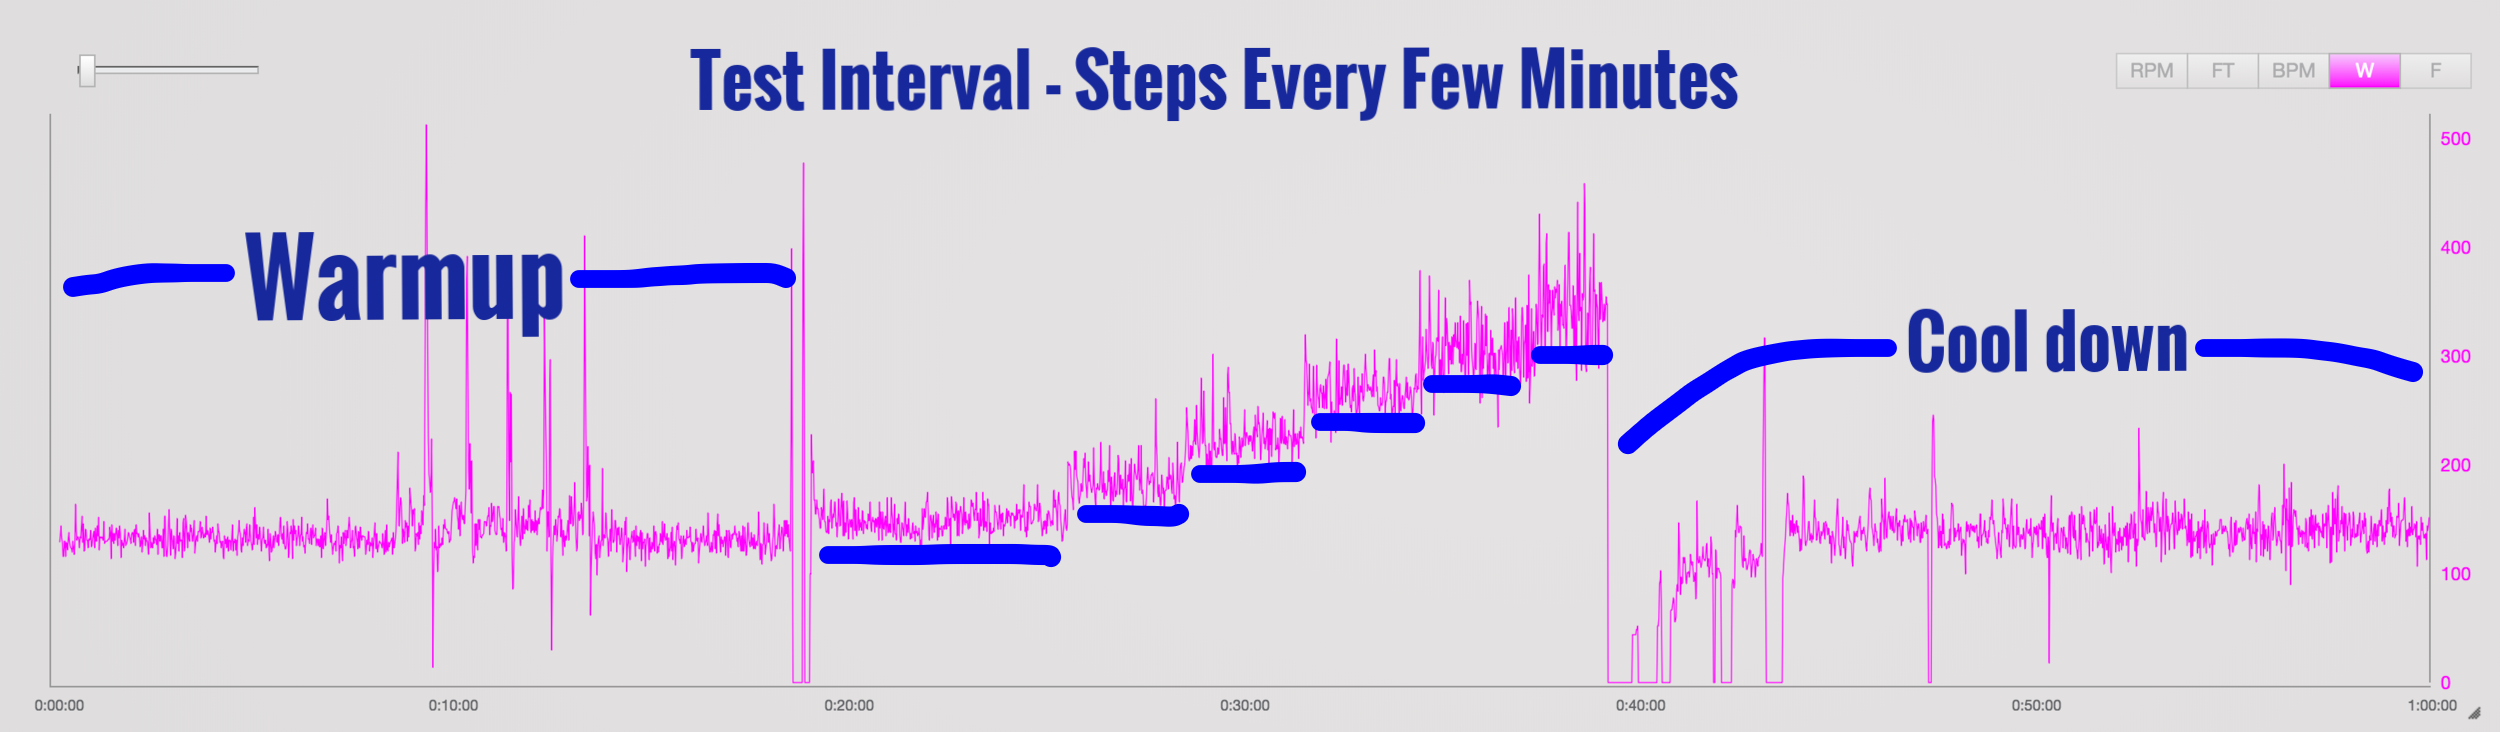 Example of a step test. A 15-20 minute warmup is followed by another 20 minutes of the test interval where resistance is turned up every few minutes, requiring your effort to increase until you fatigue. As the effort gets more difficult, your body switches from aerobic energy production to anaerobic. It is this change — at what efforts